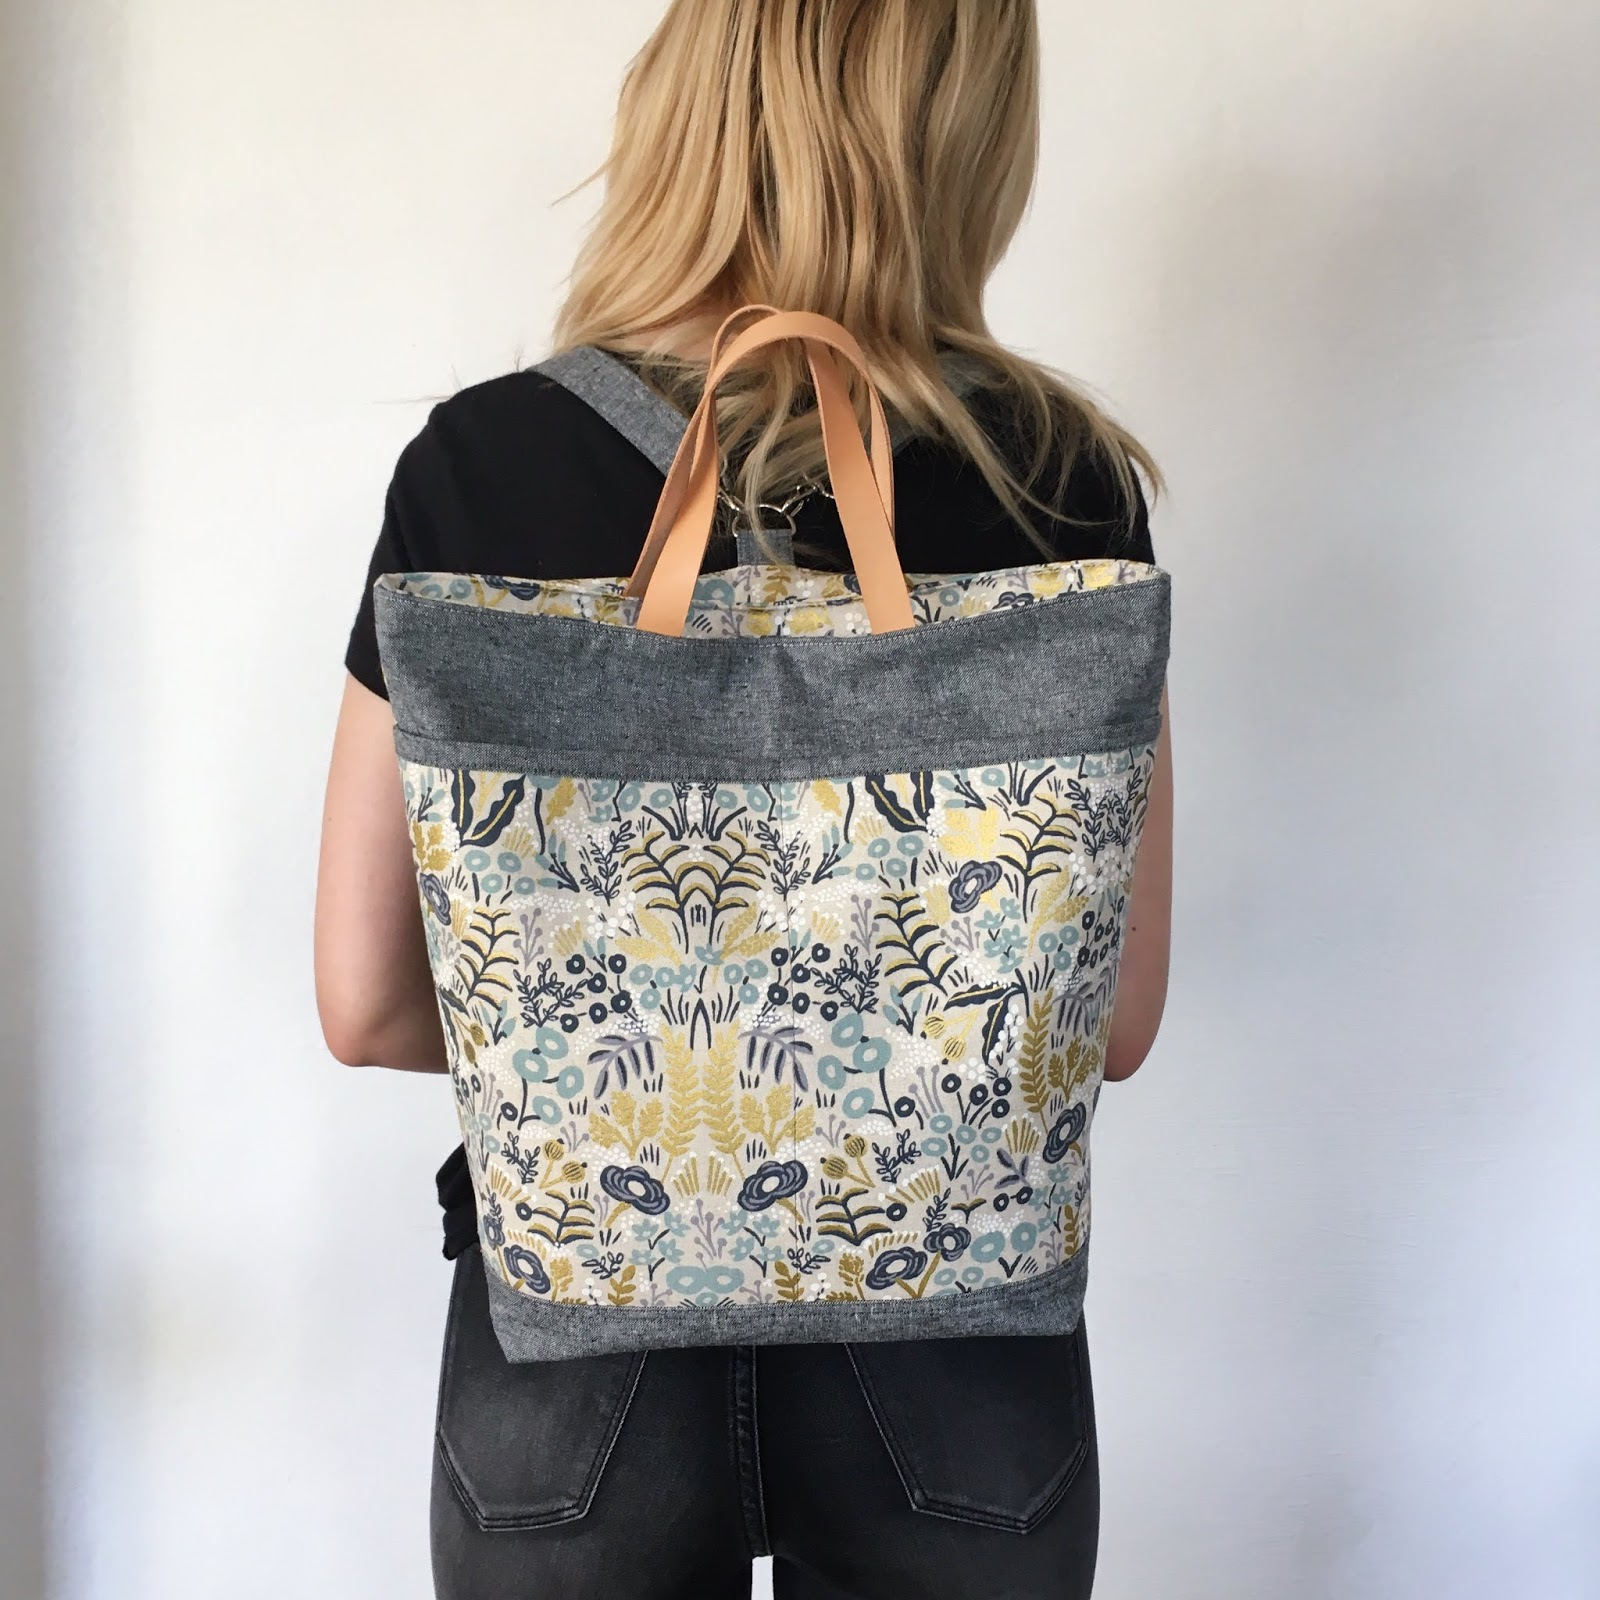 c8d531f4be24 ... bags + backpacks for quite some time as I find them super practical and  useful so